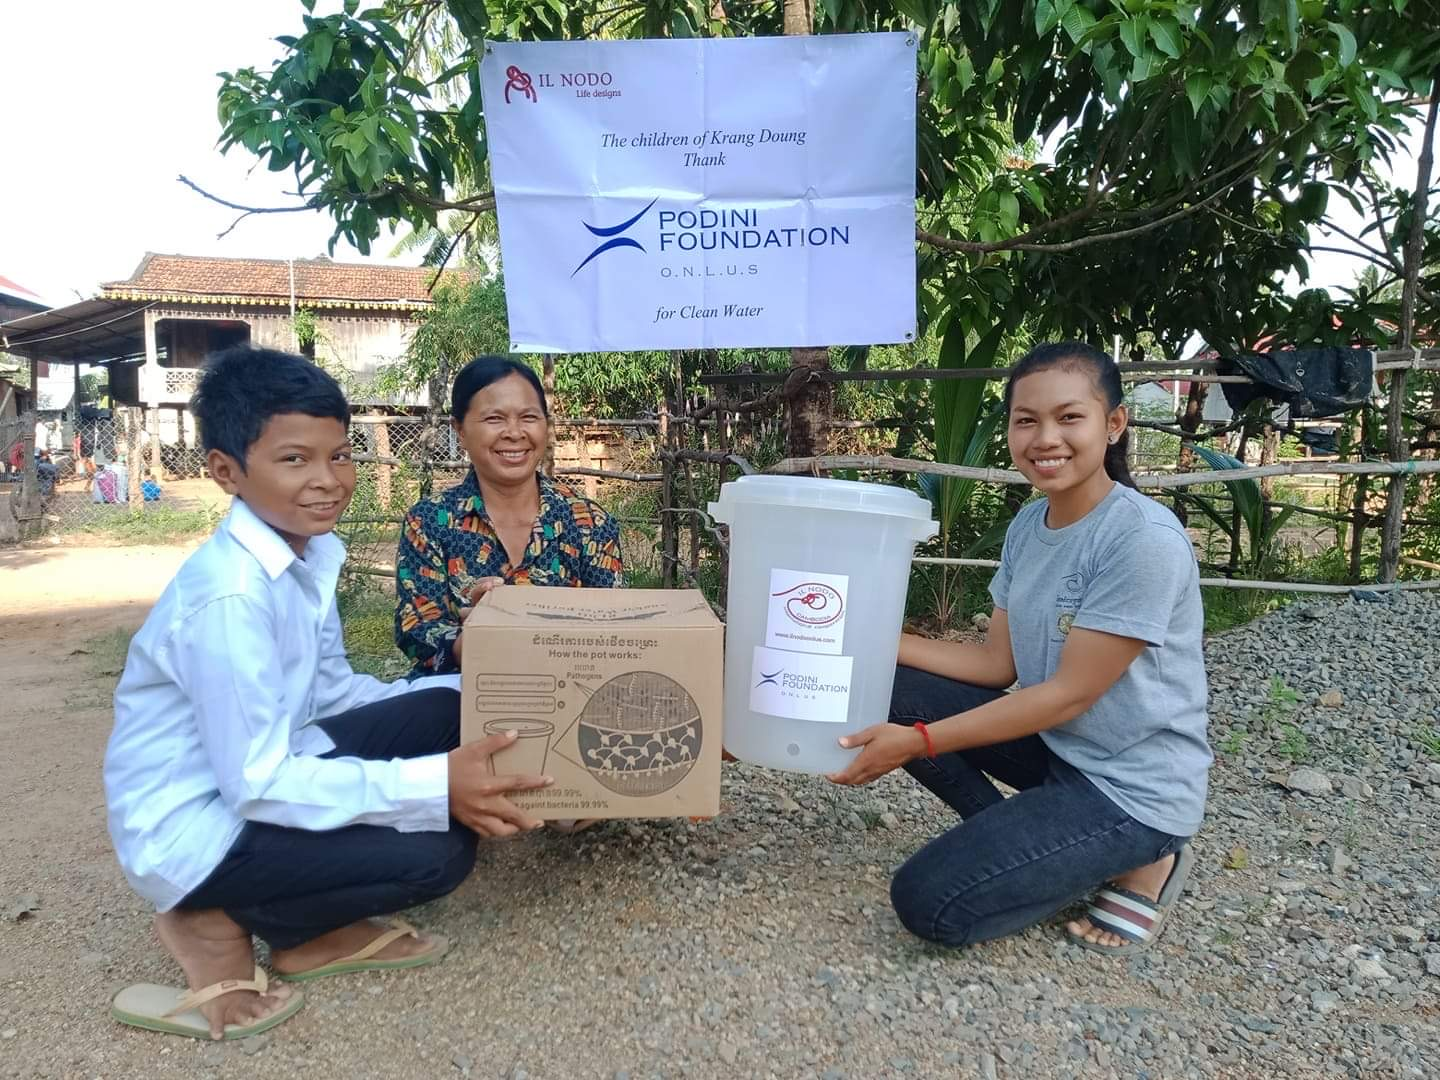 CAMBODIA: CLEAN WATER THANKS TO THE PODINI FOUNDATION